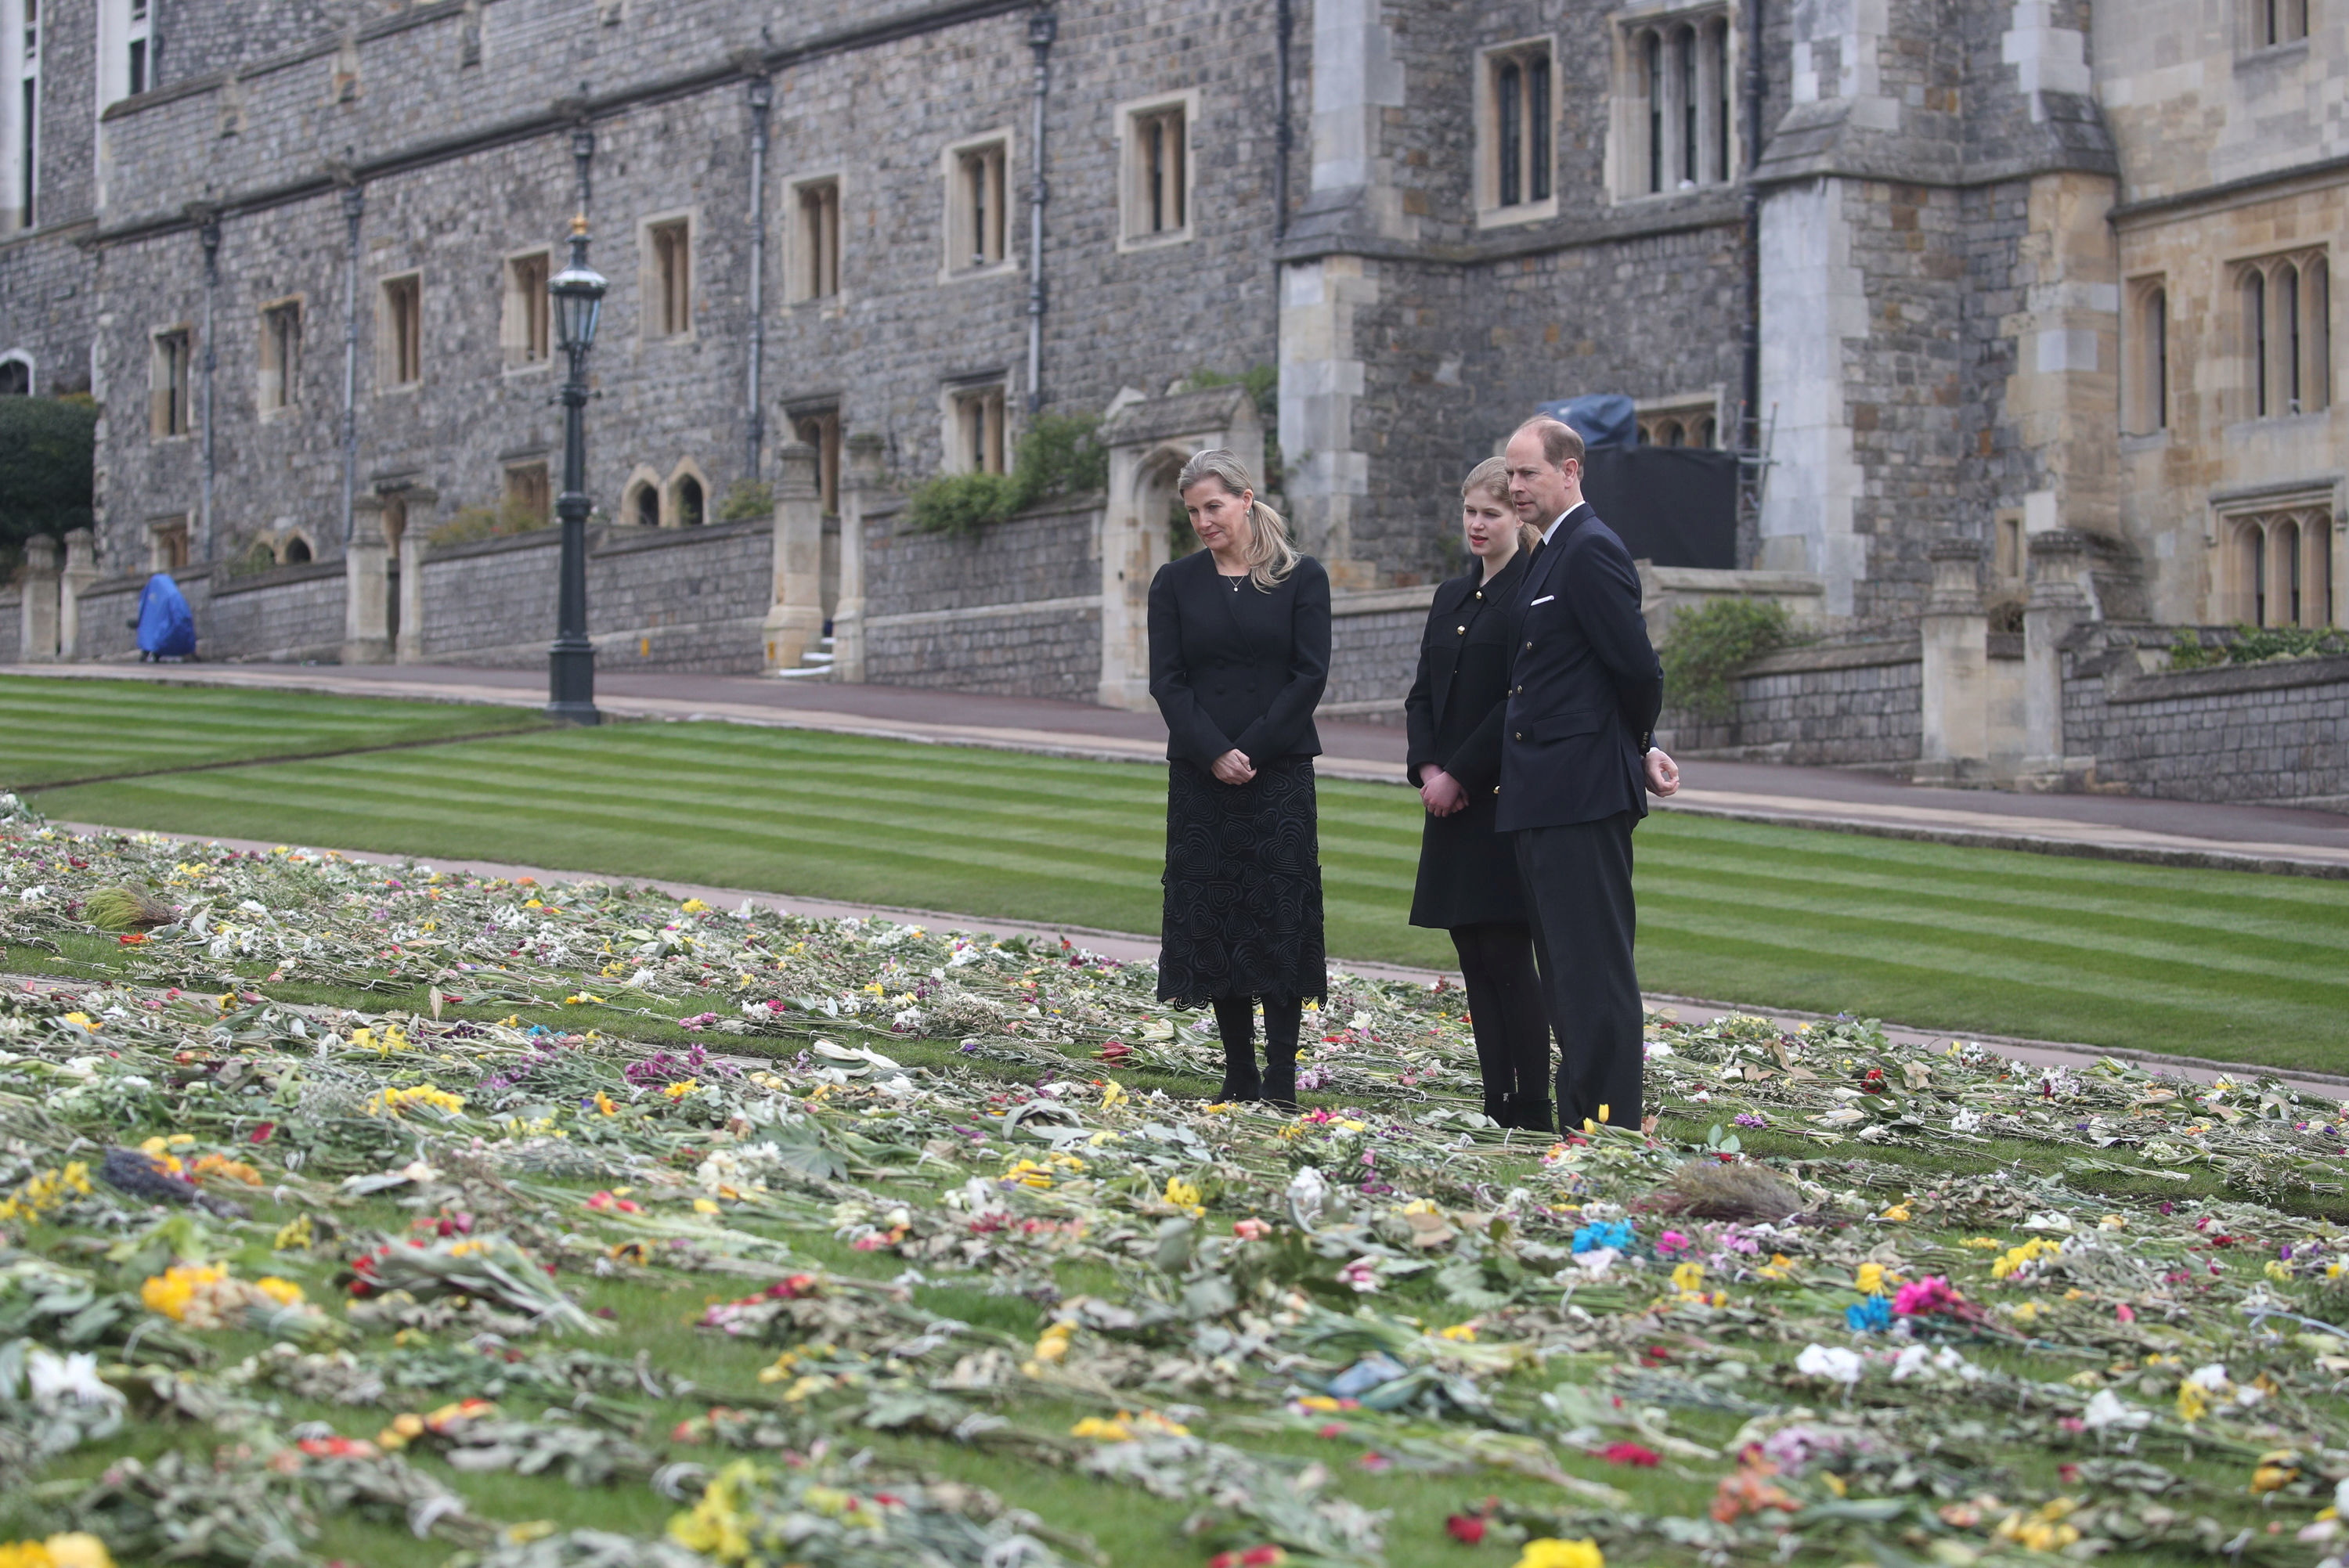 Britain's Sophie, the Countess of Wessex, Lady Louise Windsor, and Prince Edward, Earl of Wessex,   view flowers outside St George's Chapel, following the death of Britain's Prince Philip, the Duke of Edinburgh at the age of 99, at Windsor Castle, Berkshire, Britain April 16, 2021. Steve Parsons/PA Wire/Pool via REUTERS